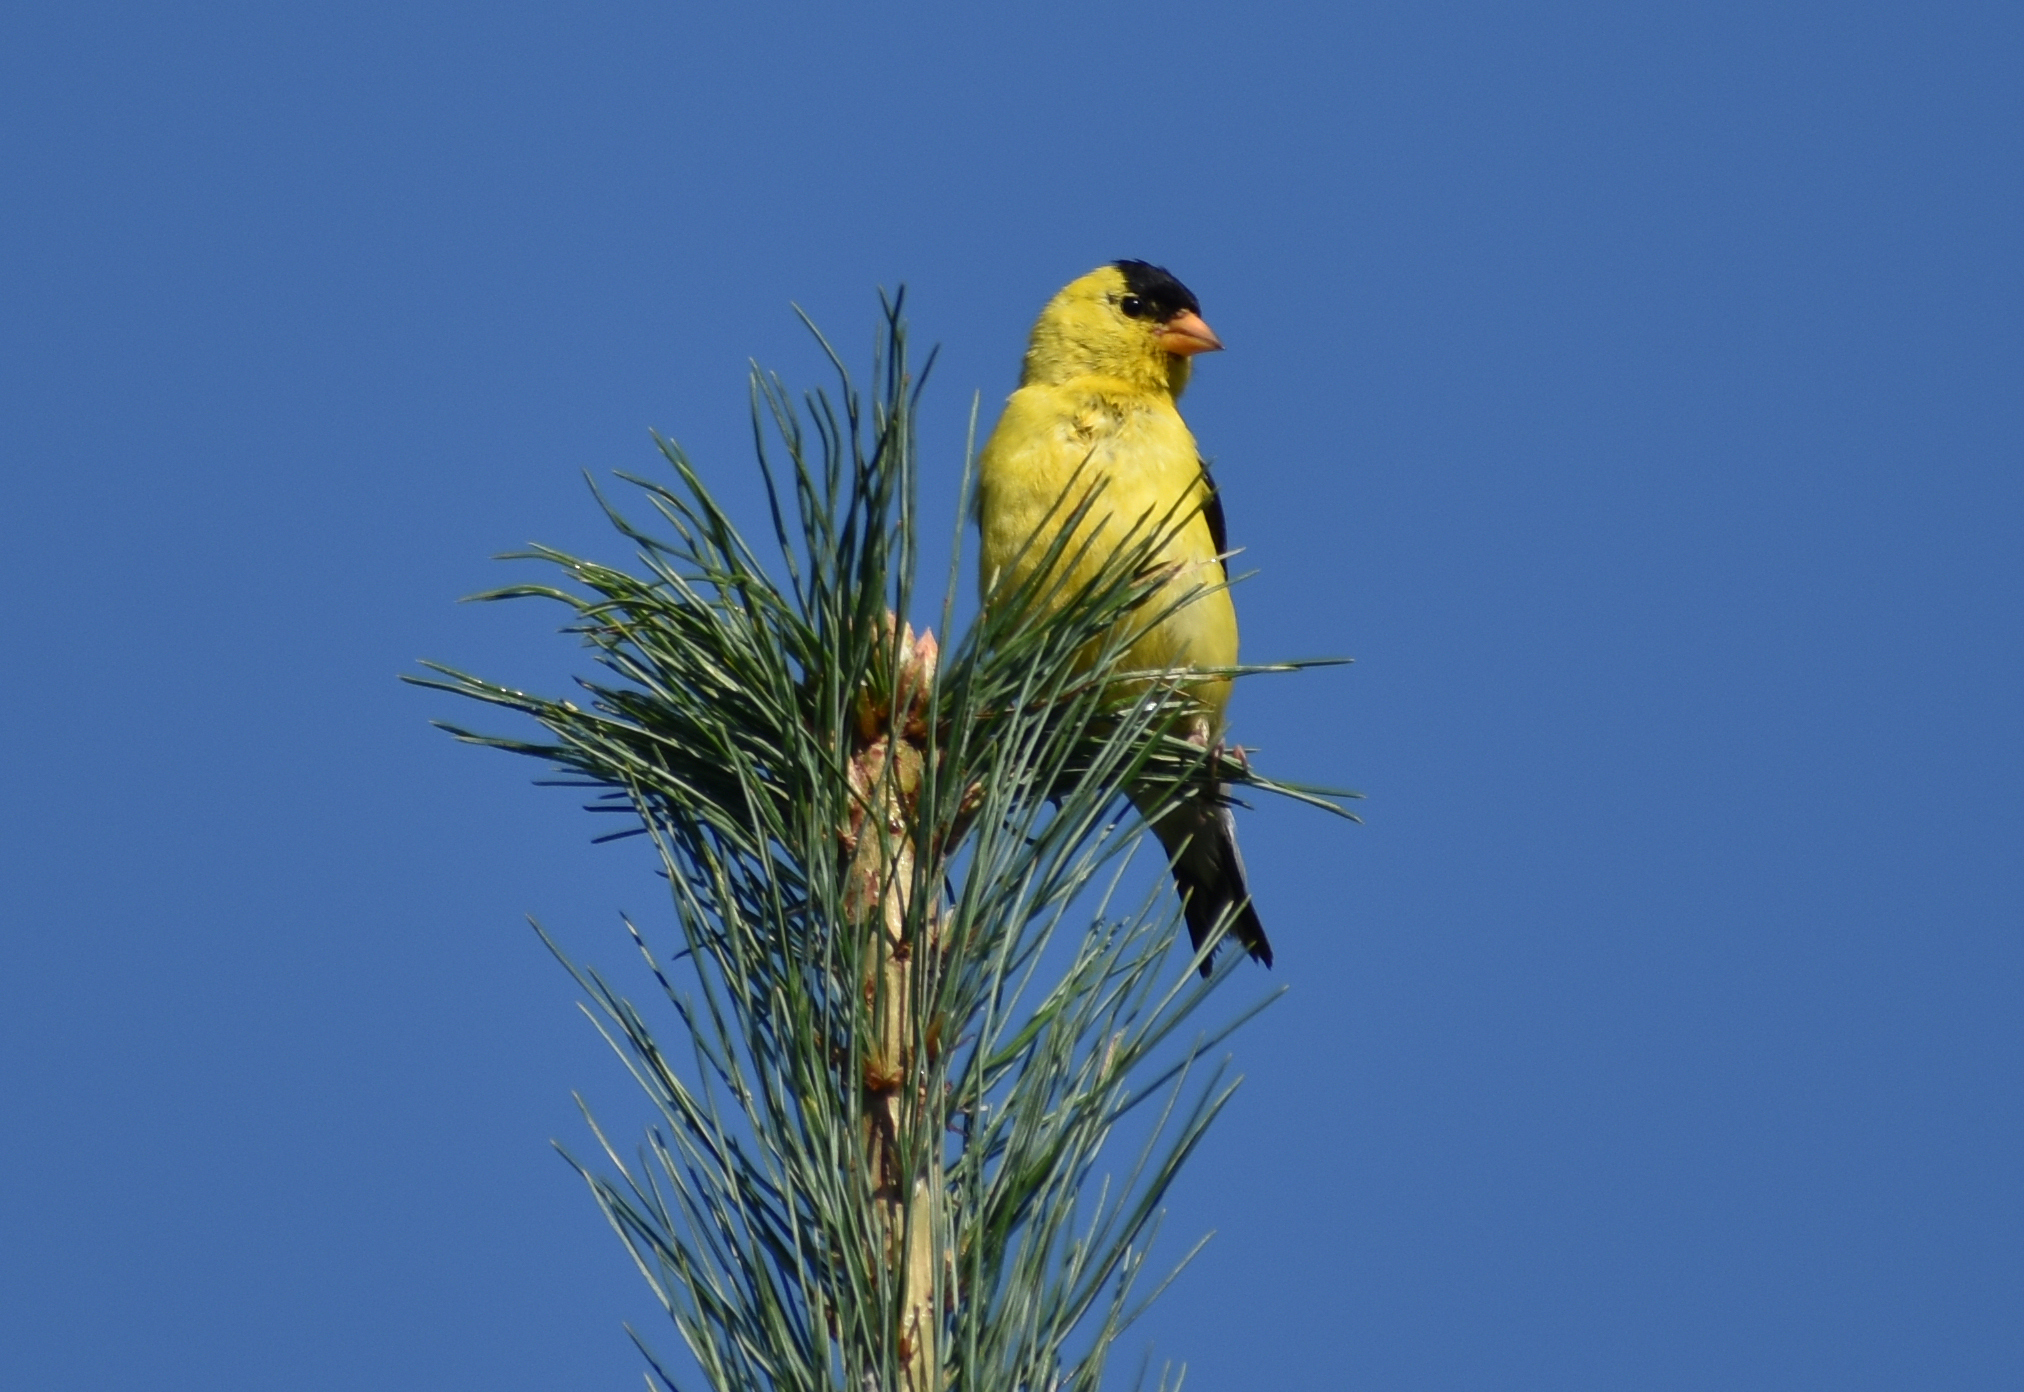 How to Attract American Goldfinch